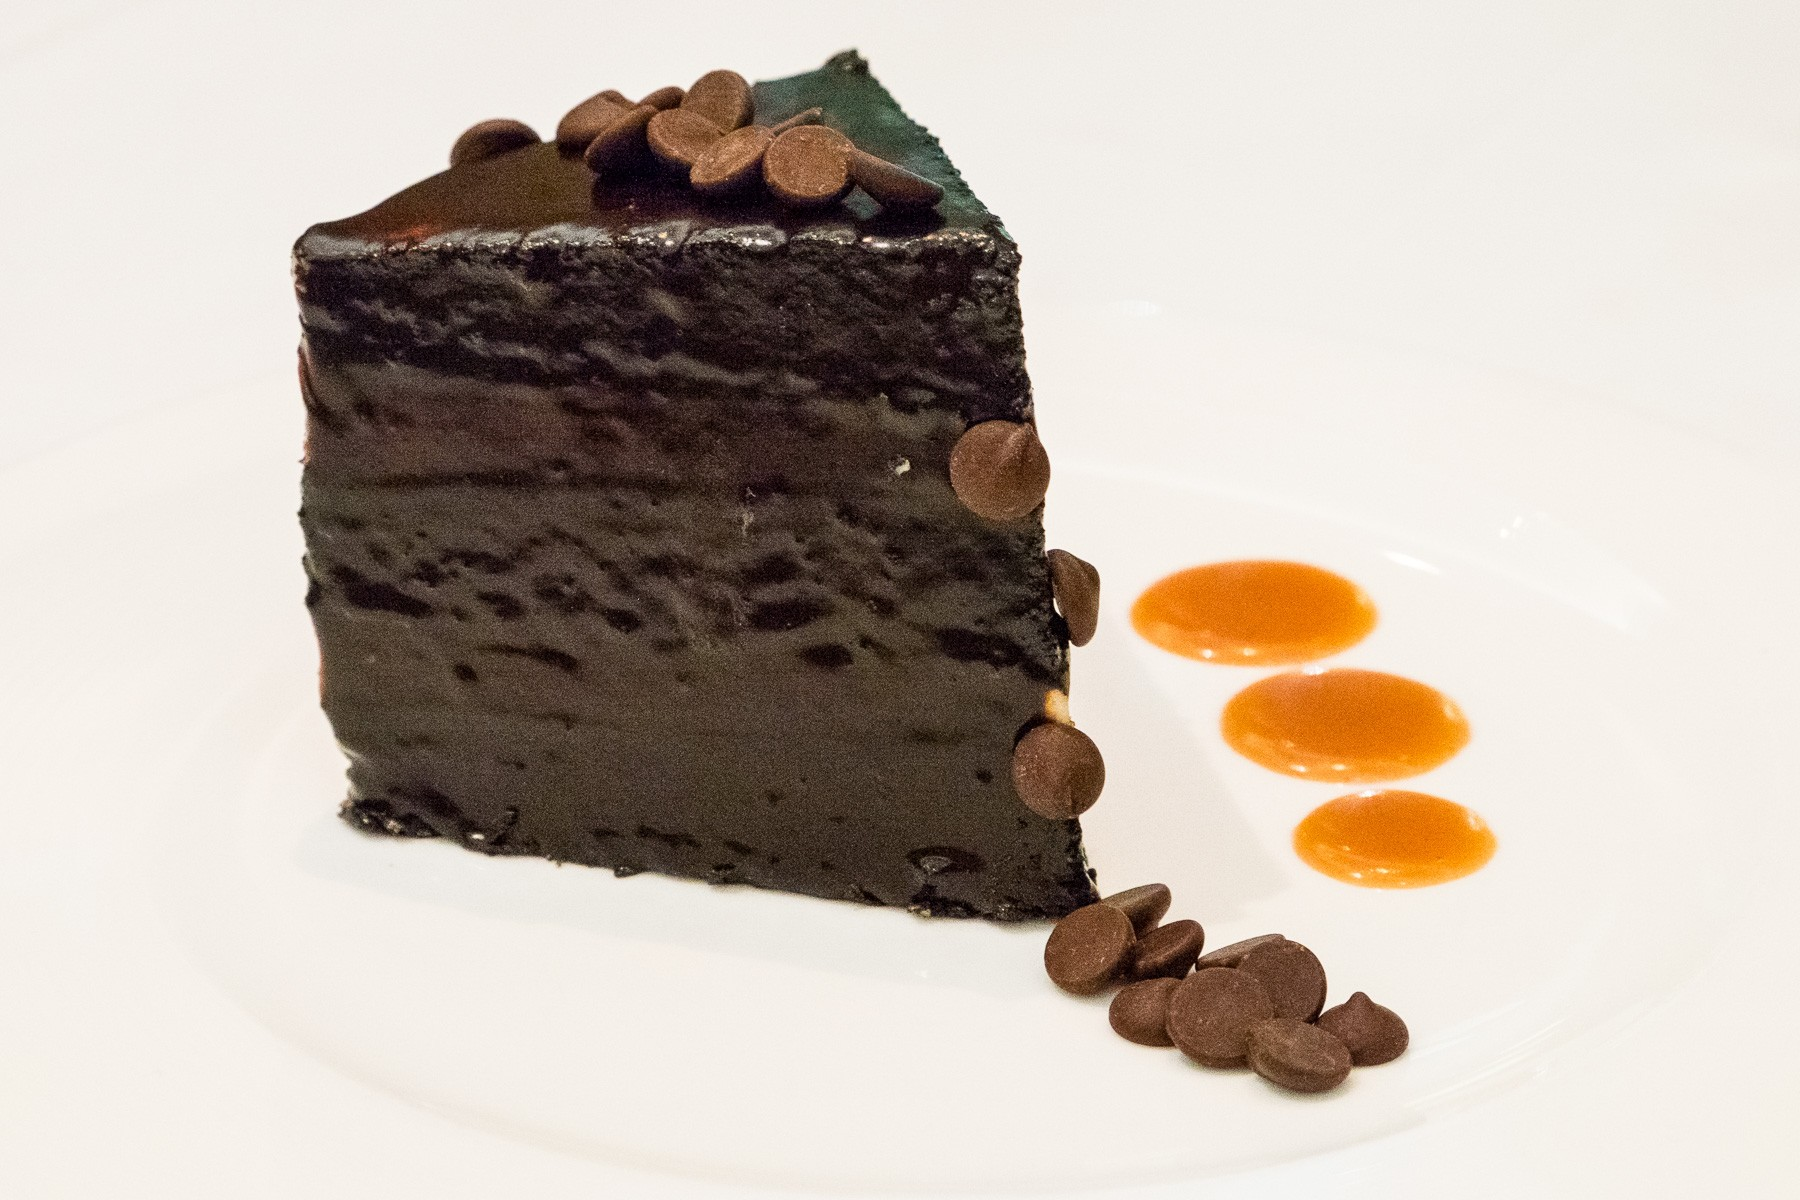 chocolate cake at TRIS